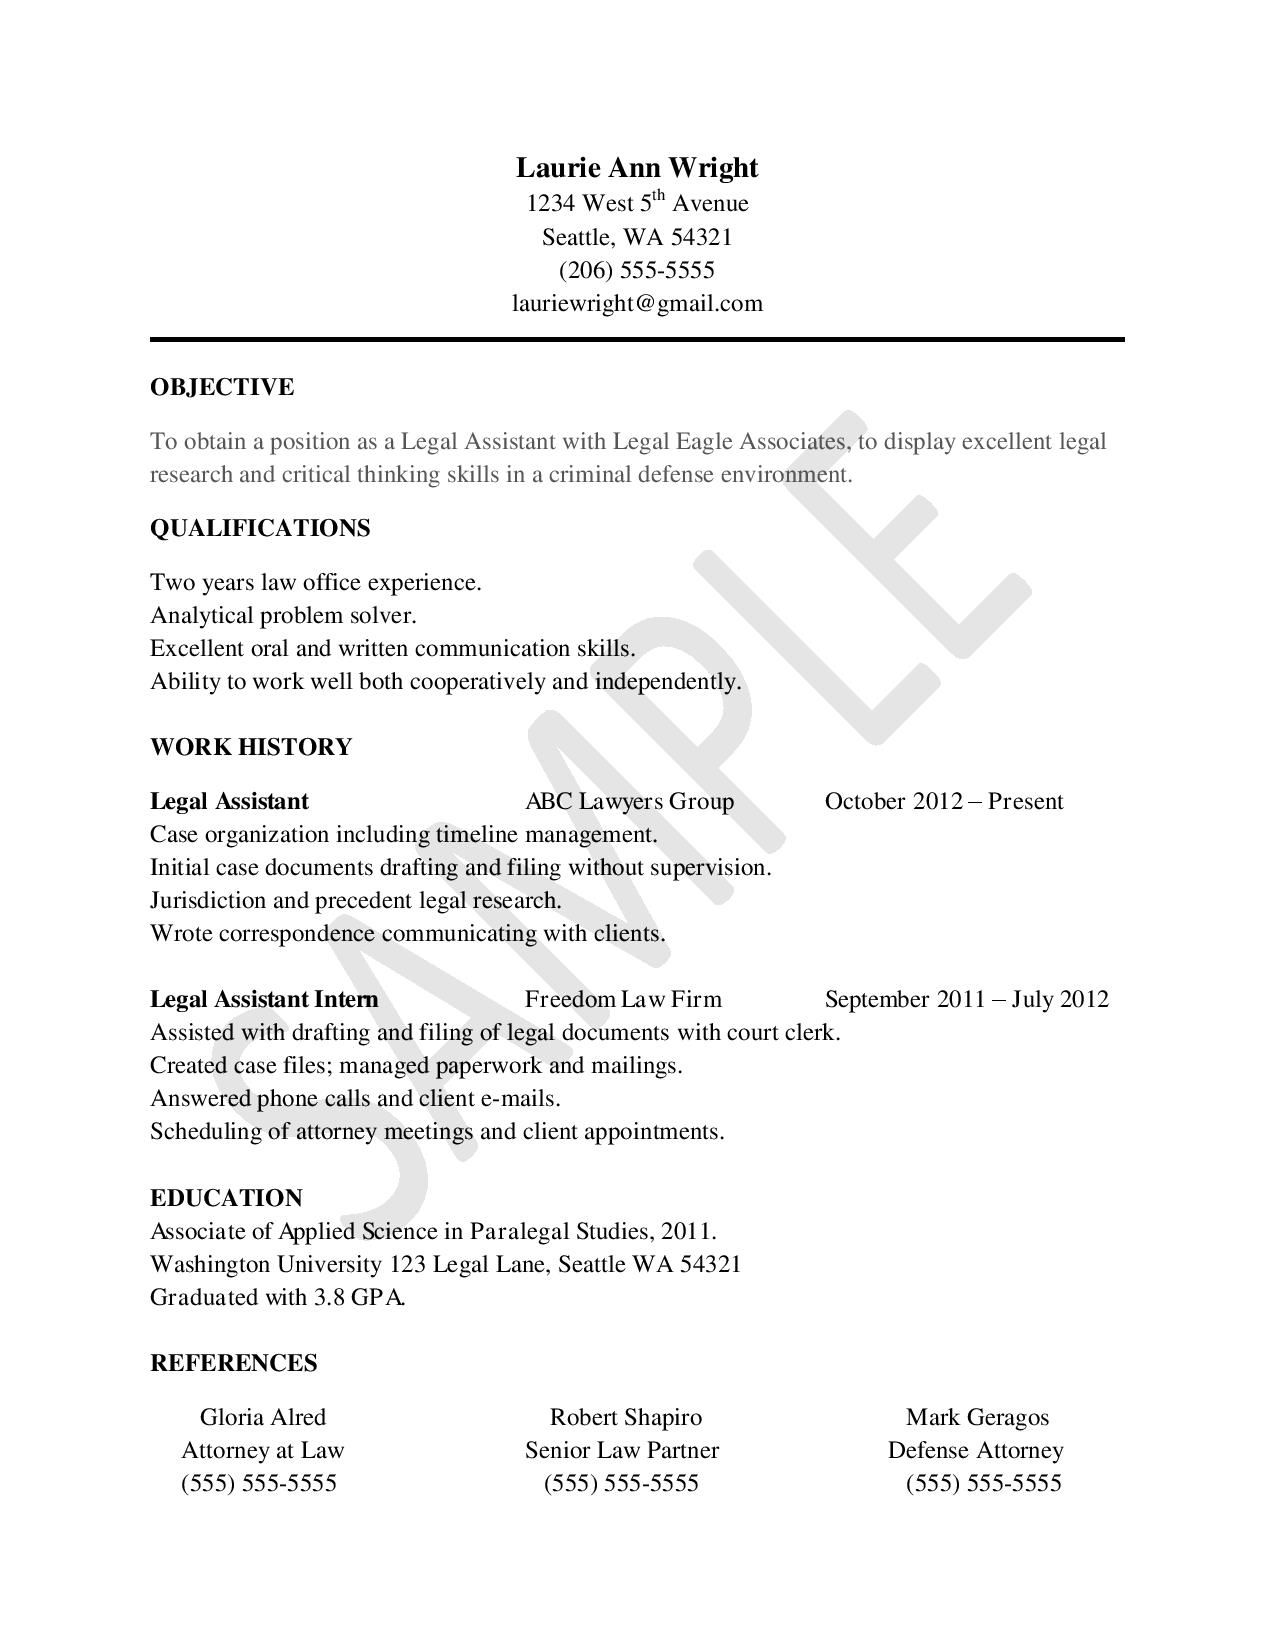 Sample Simple Resume Sample Resume For Legal Assistants  Legalassistant